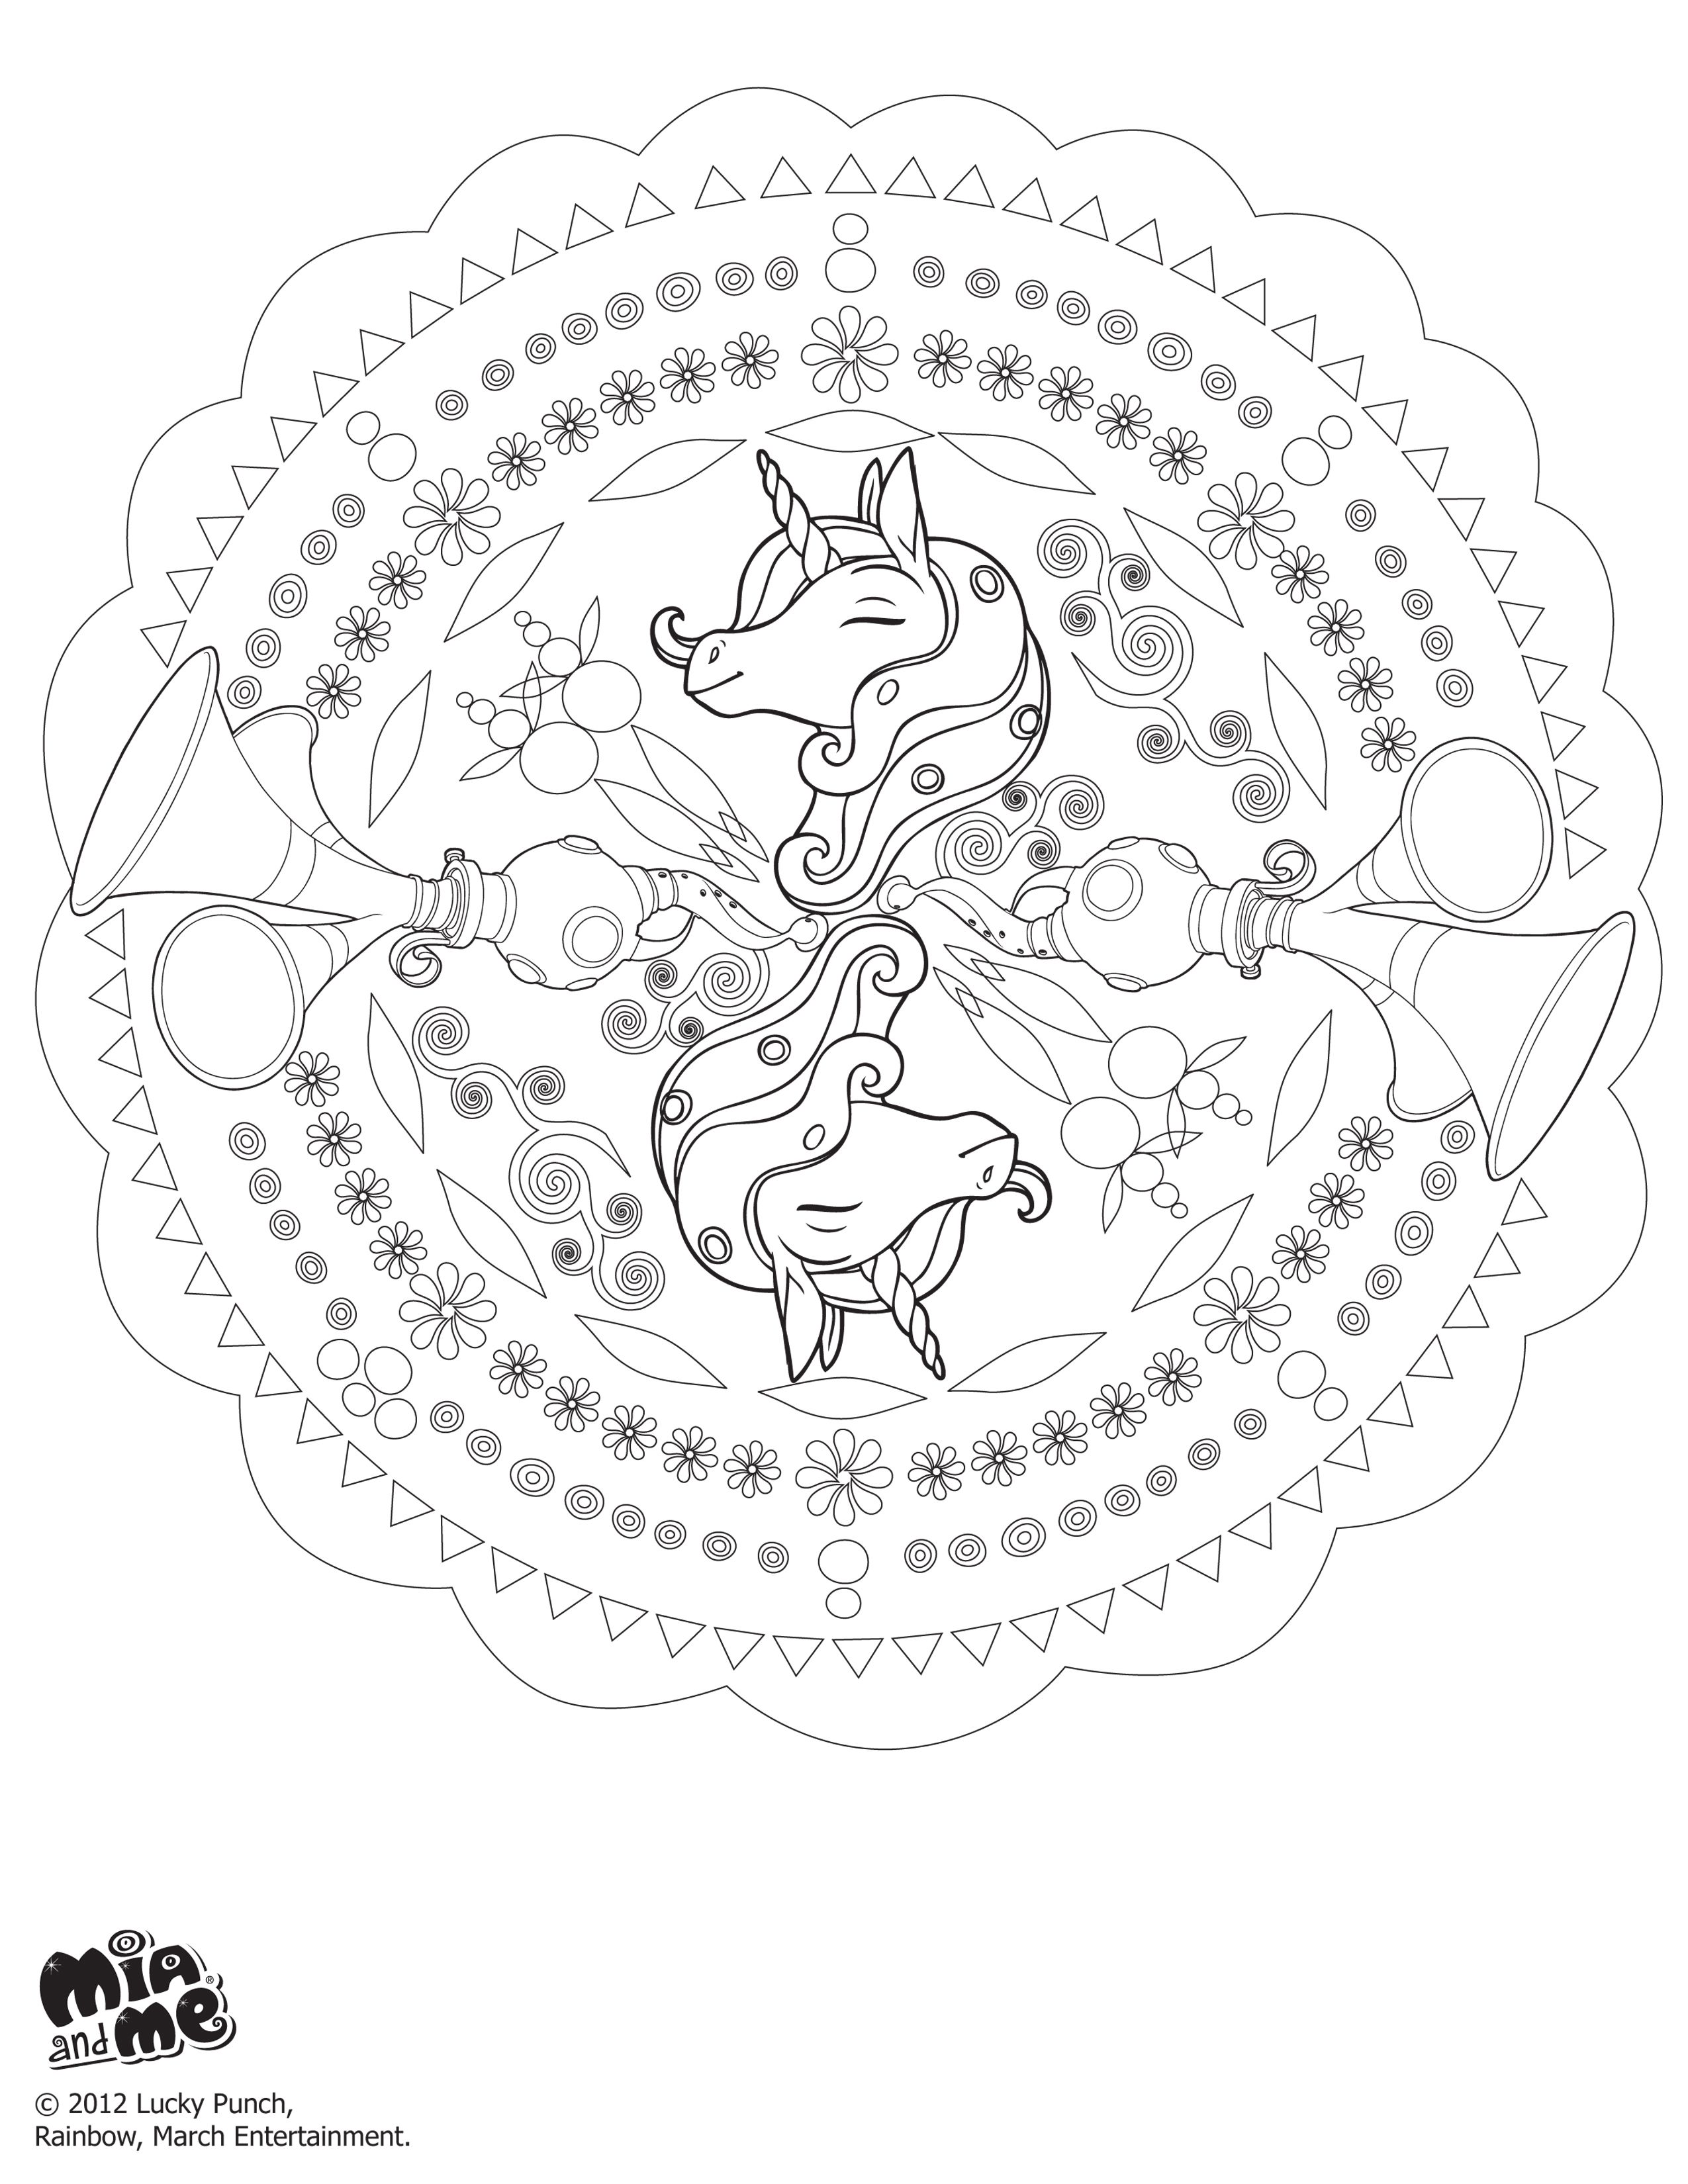 Mia and me unicorn coloring pages - Explore Party Shop Kids Coloring And More Mia And Me